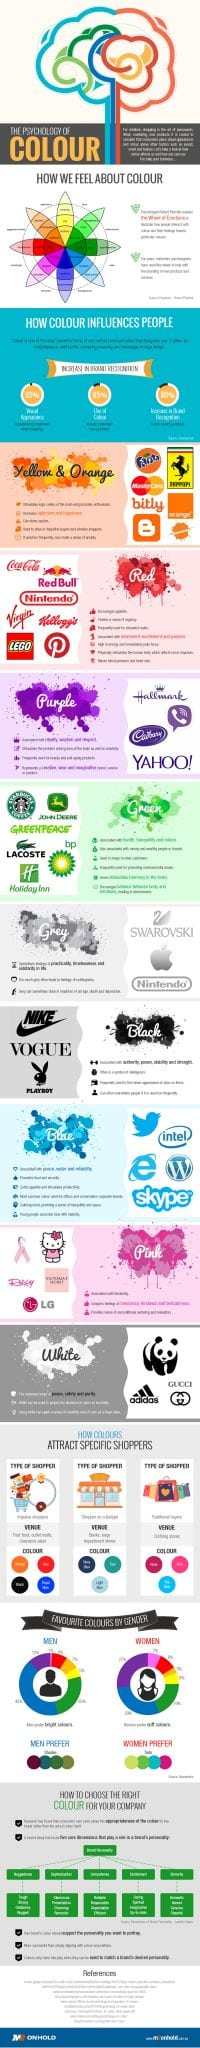 Infographic – The Psychology of Colour